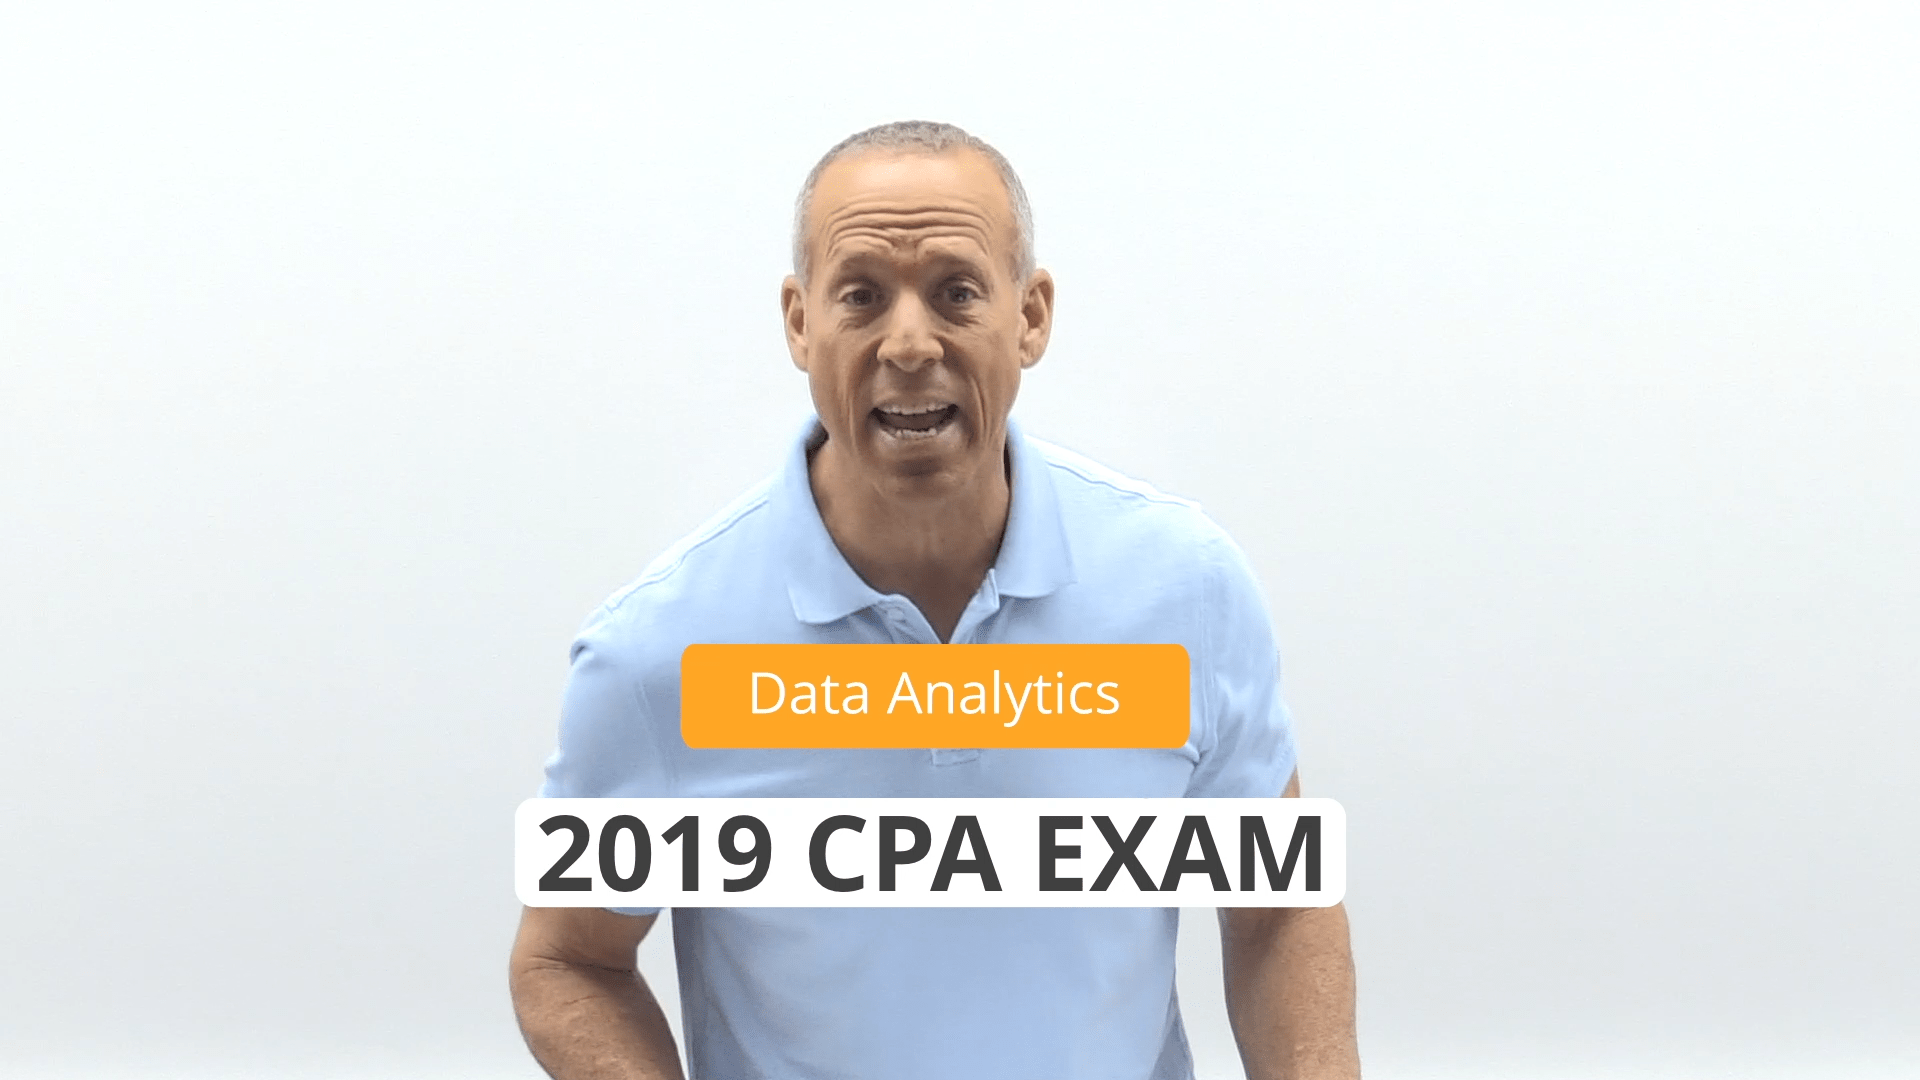 Data-Analytics-Teaser-Video